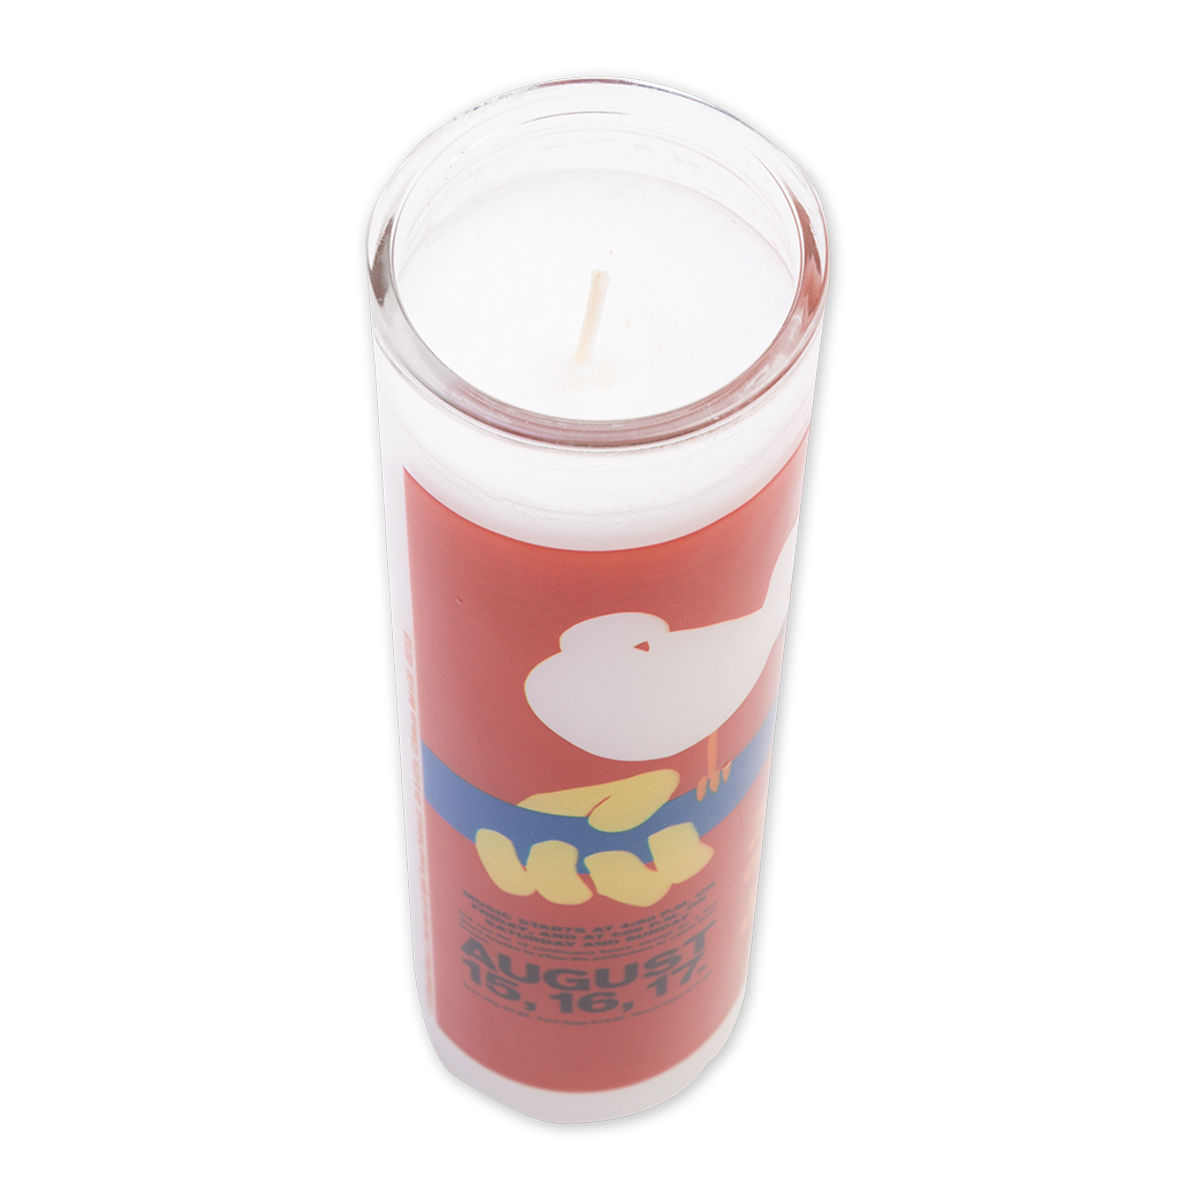 Woodstock Prayer Candle